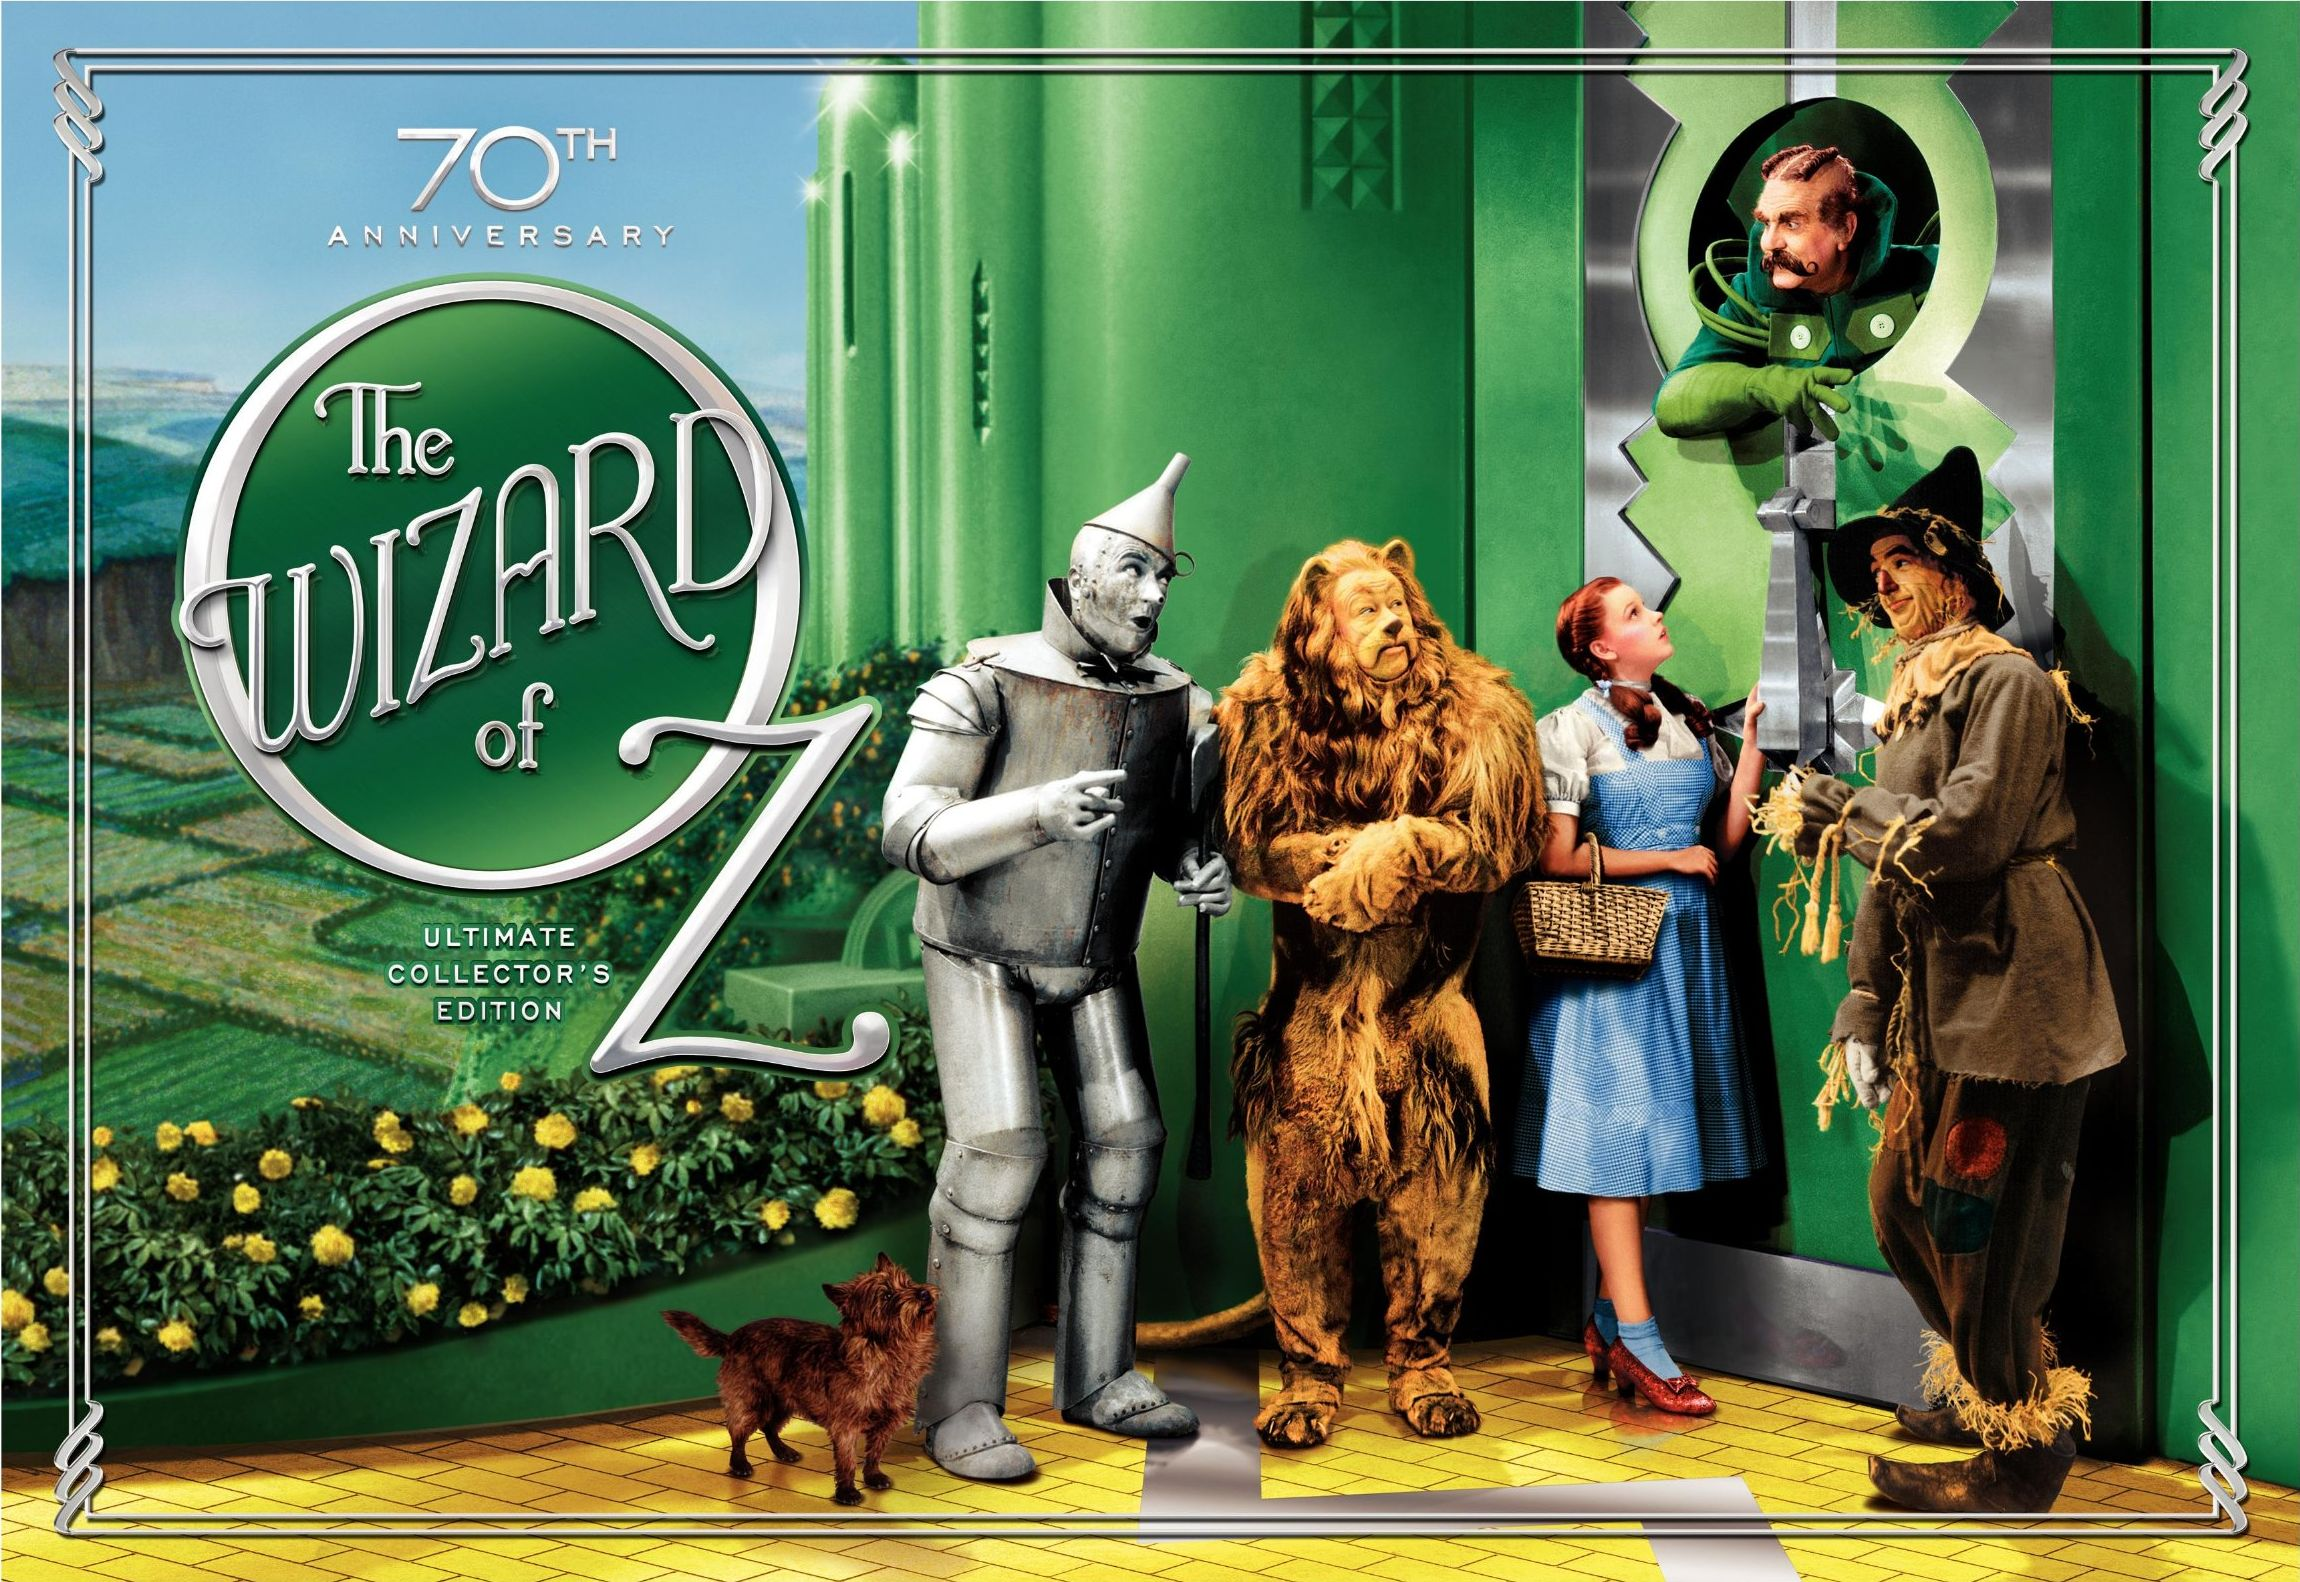 Wizard of oz quotes - Wizard Of Oz Quotes 42